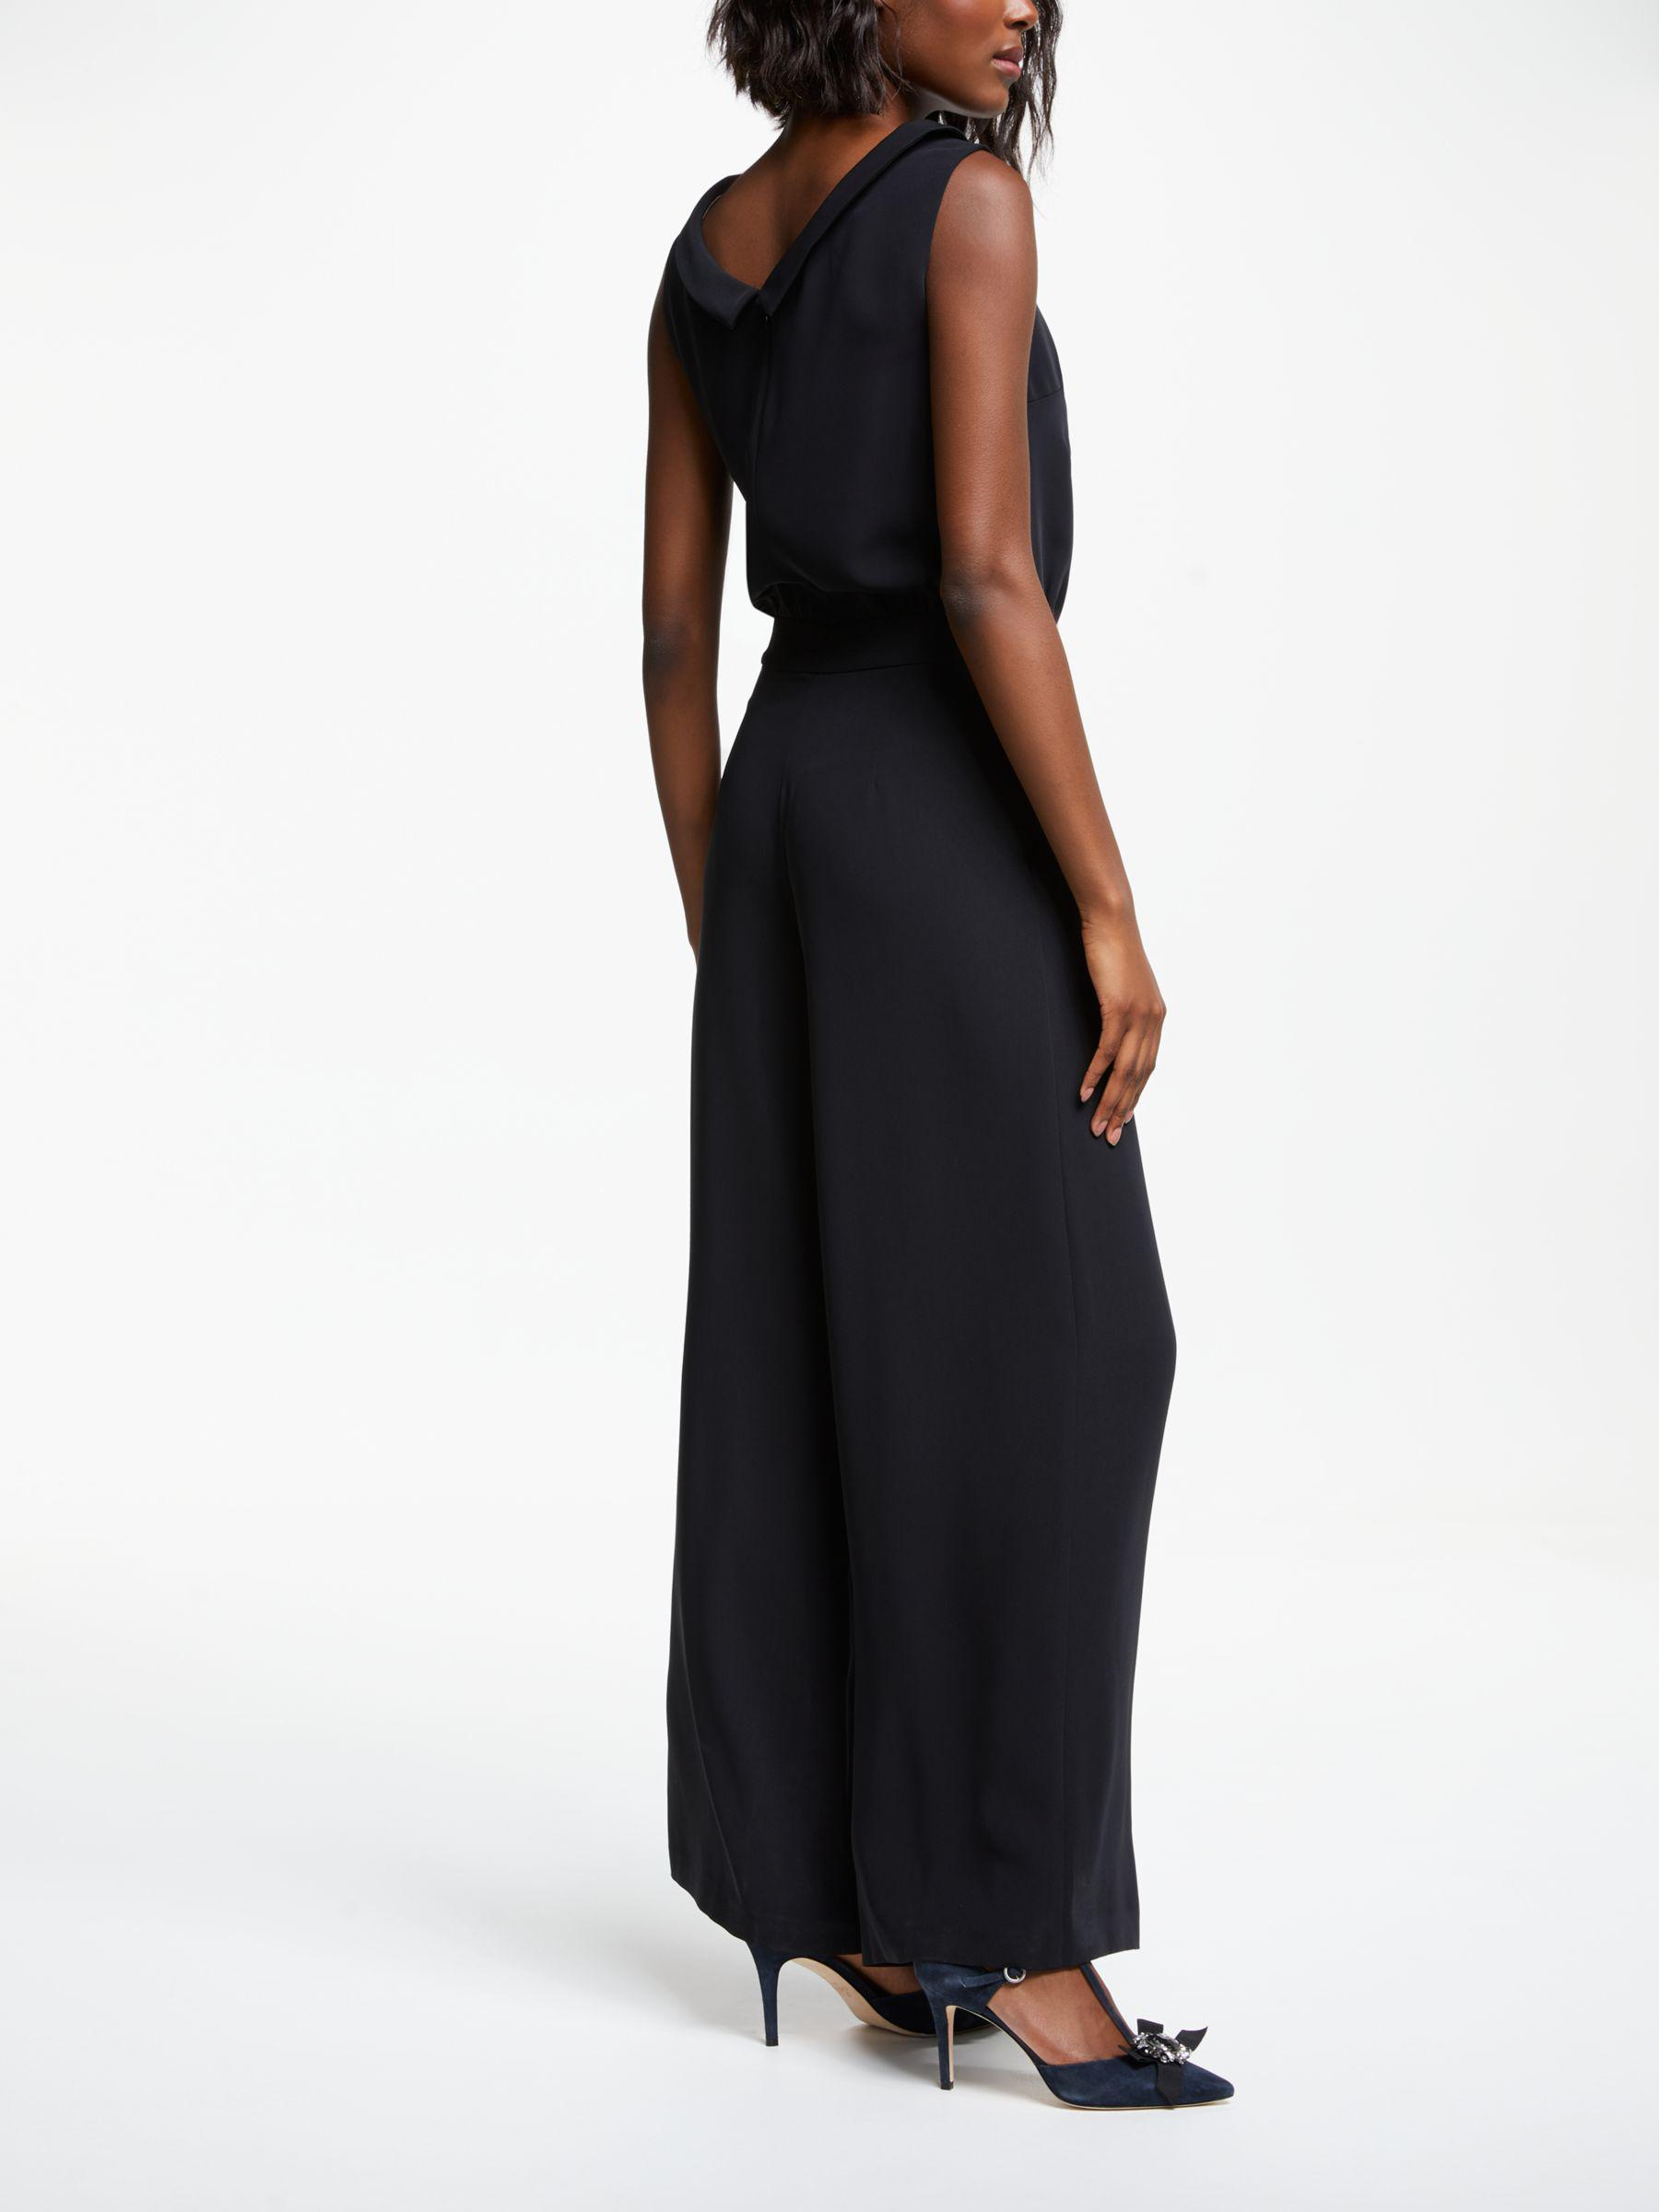 Boden Clarissa Jumpsuit In Black Lyst